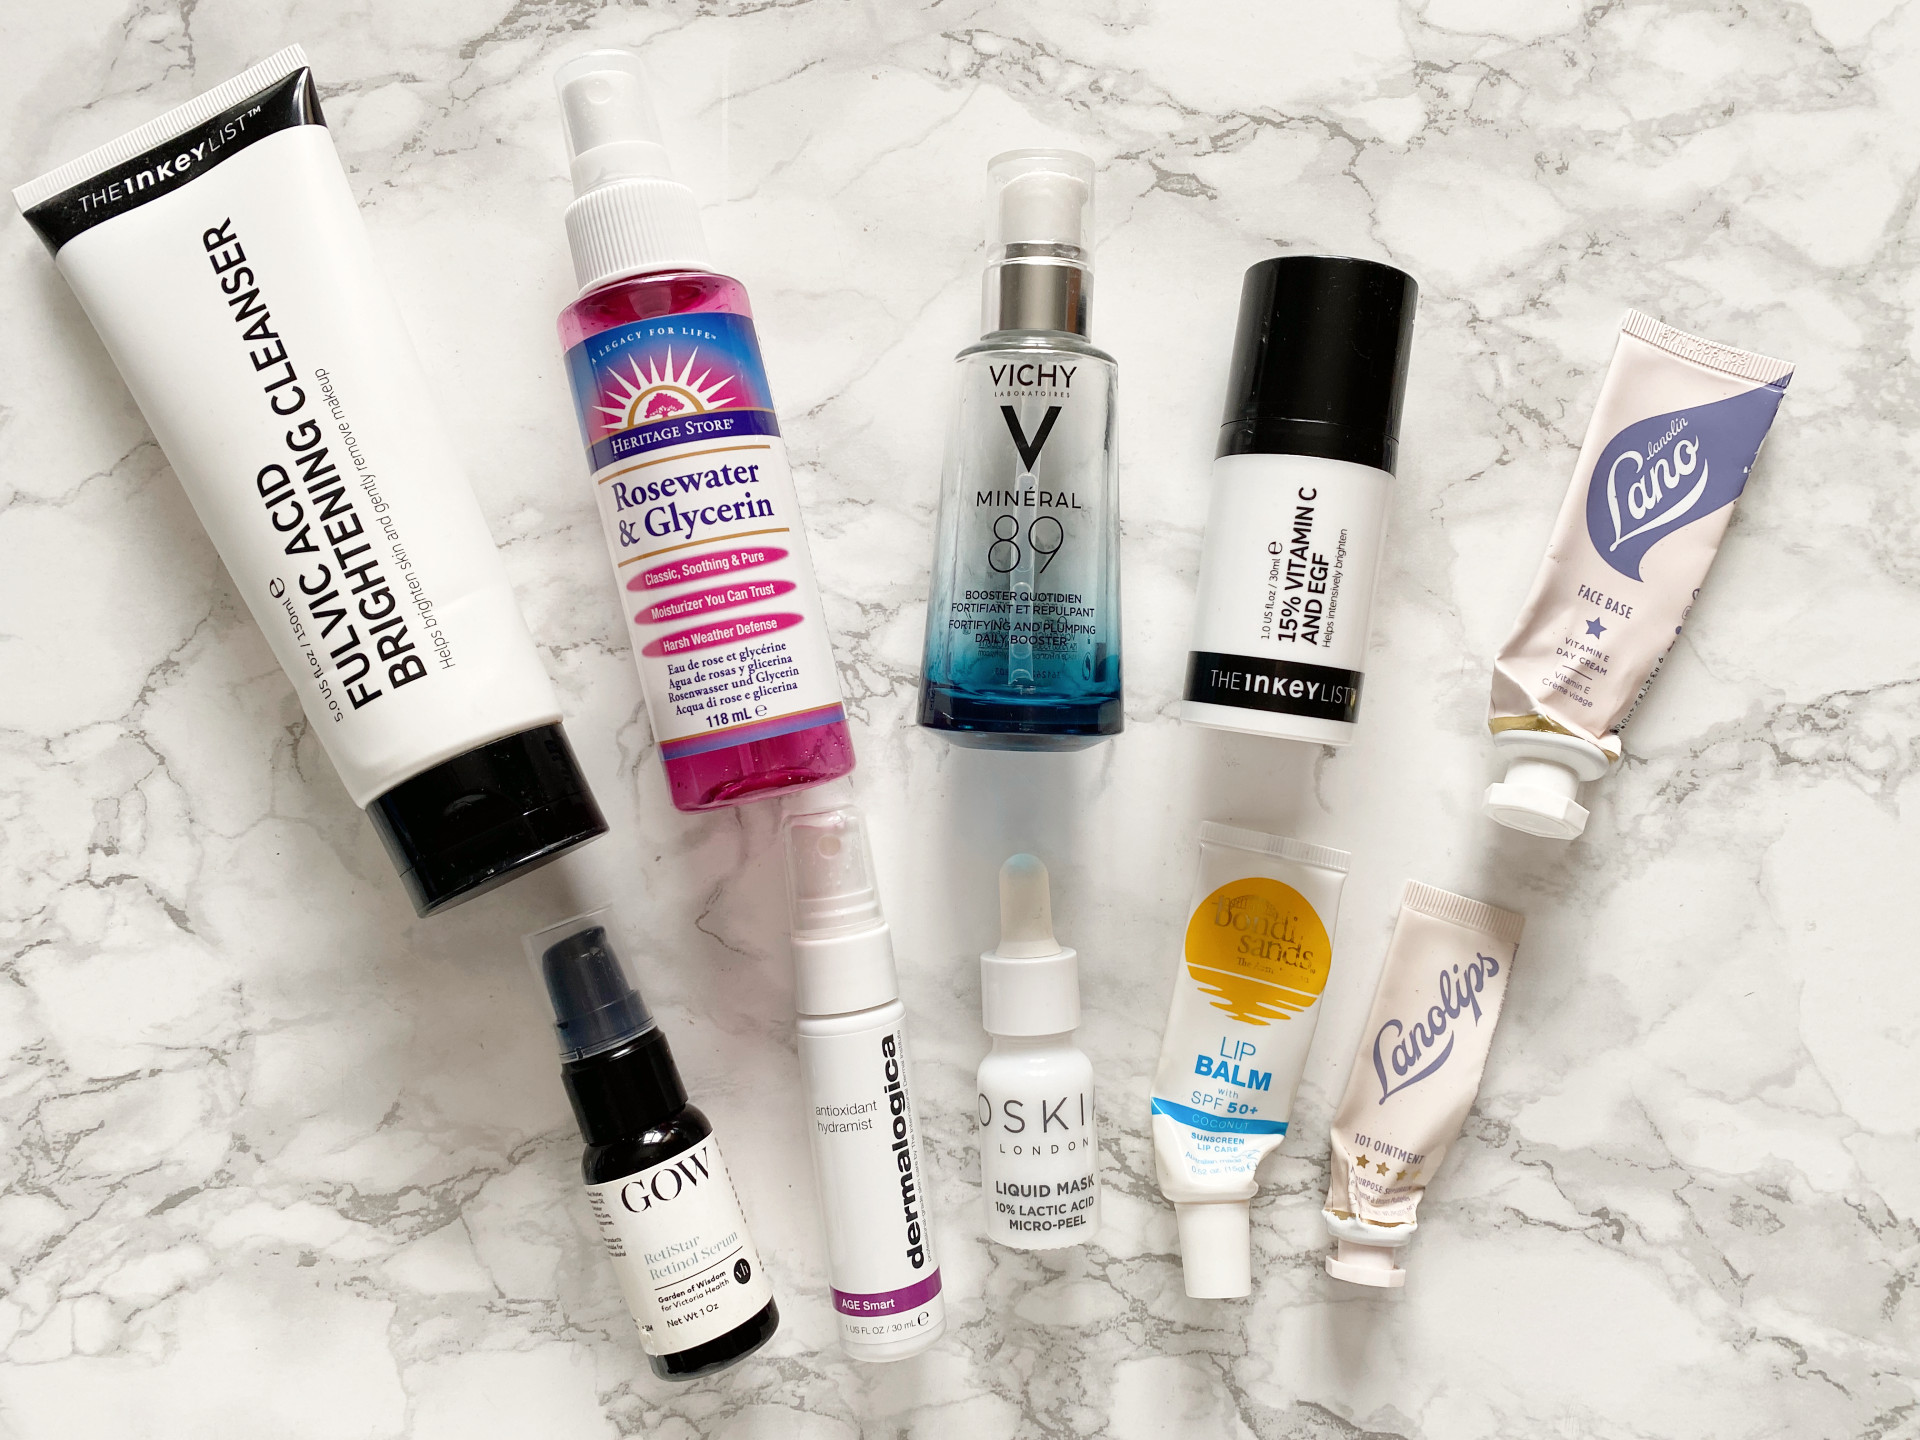 skincare empties review vichy mineral 89 lanolips inkey list